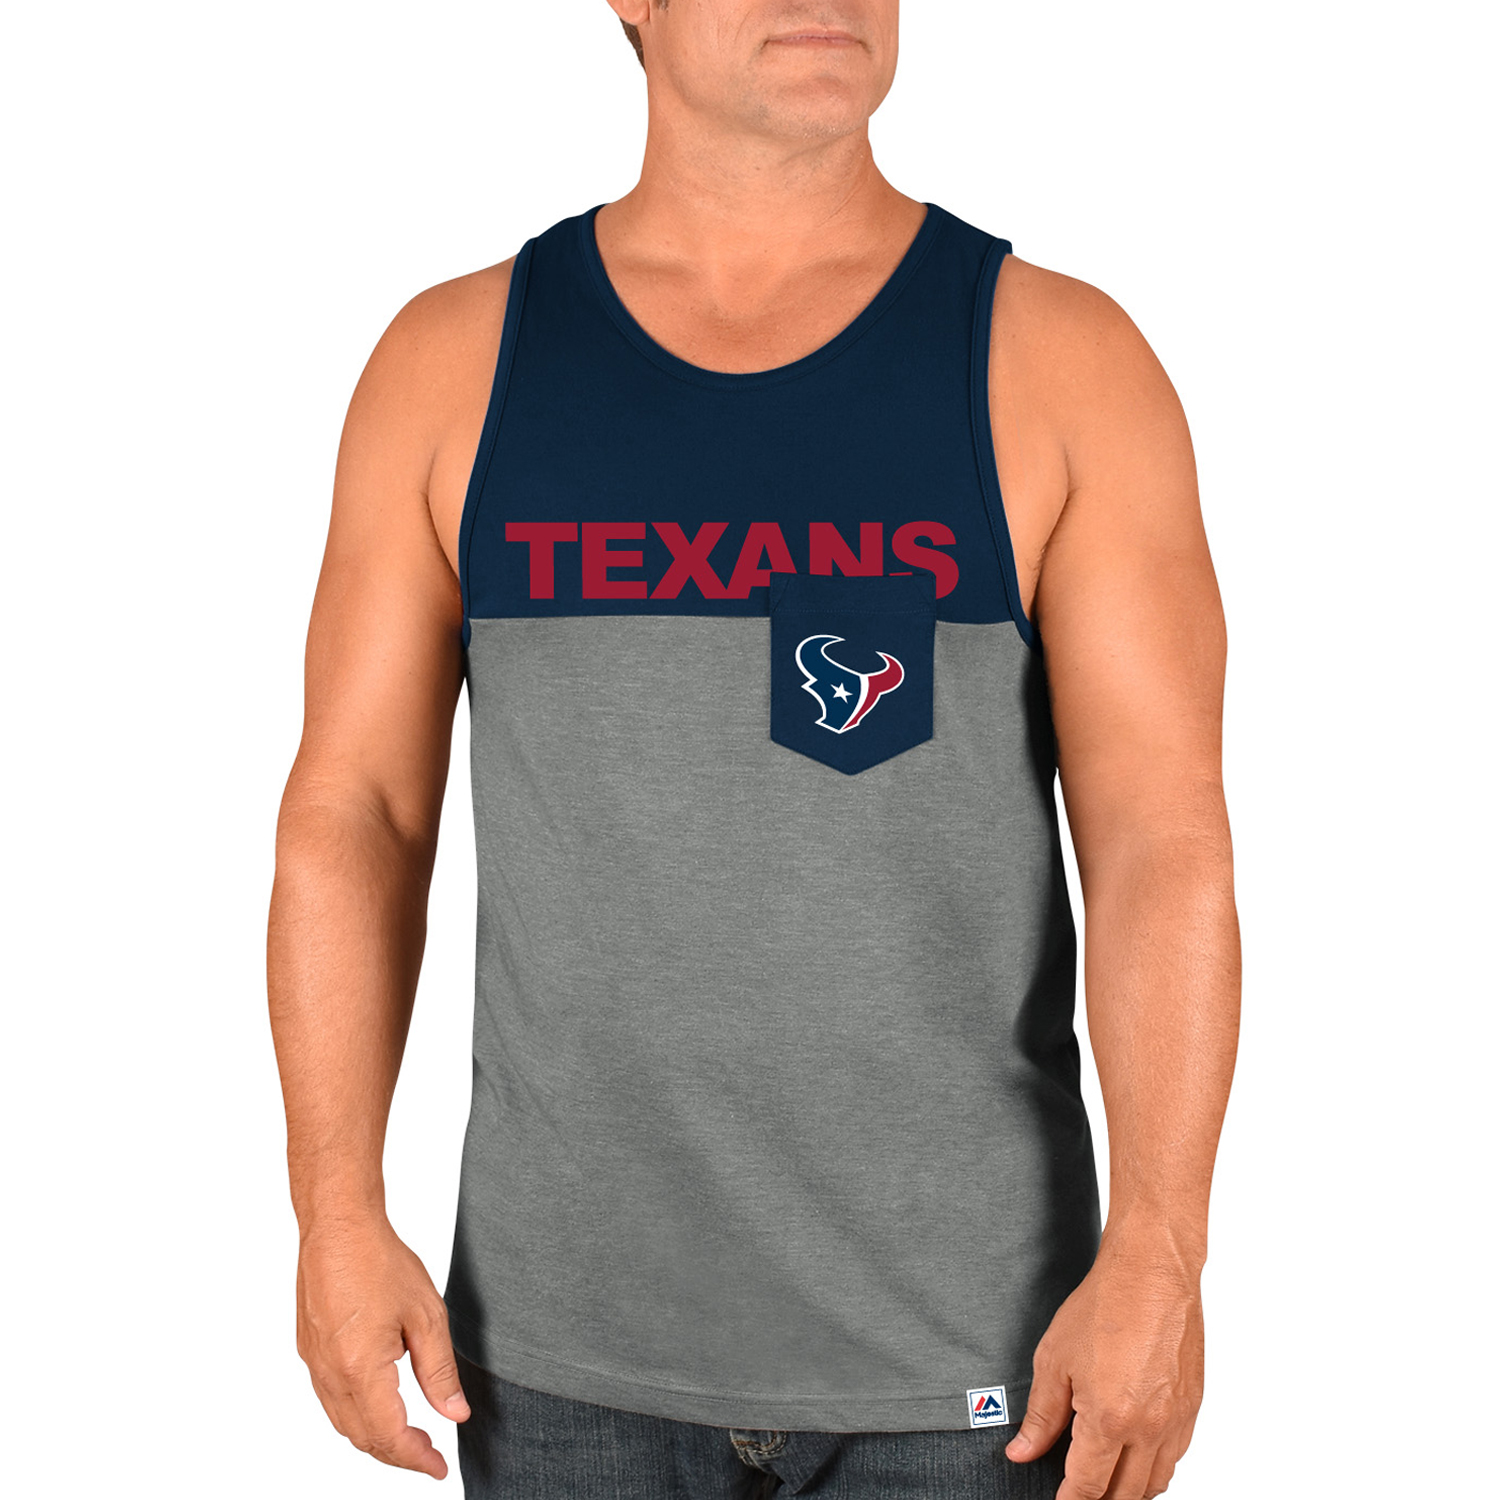 Houston Texans Majestic Throw the Towel Tank Top - Heathered Gray/Navy